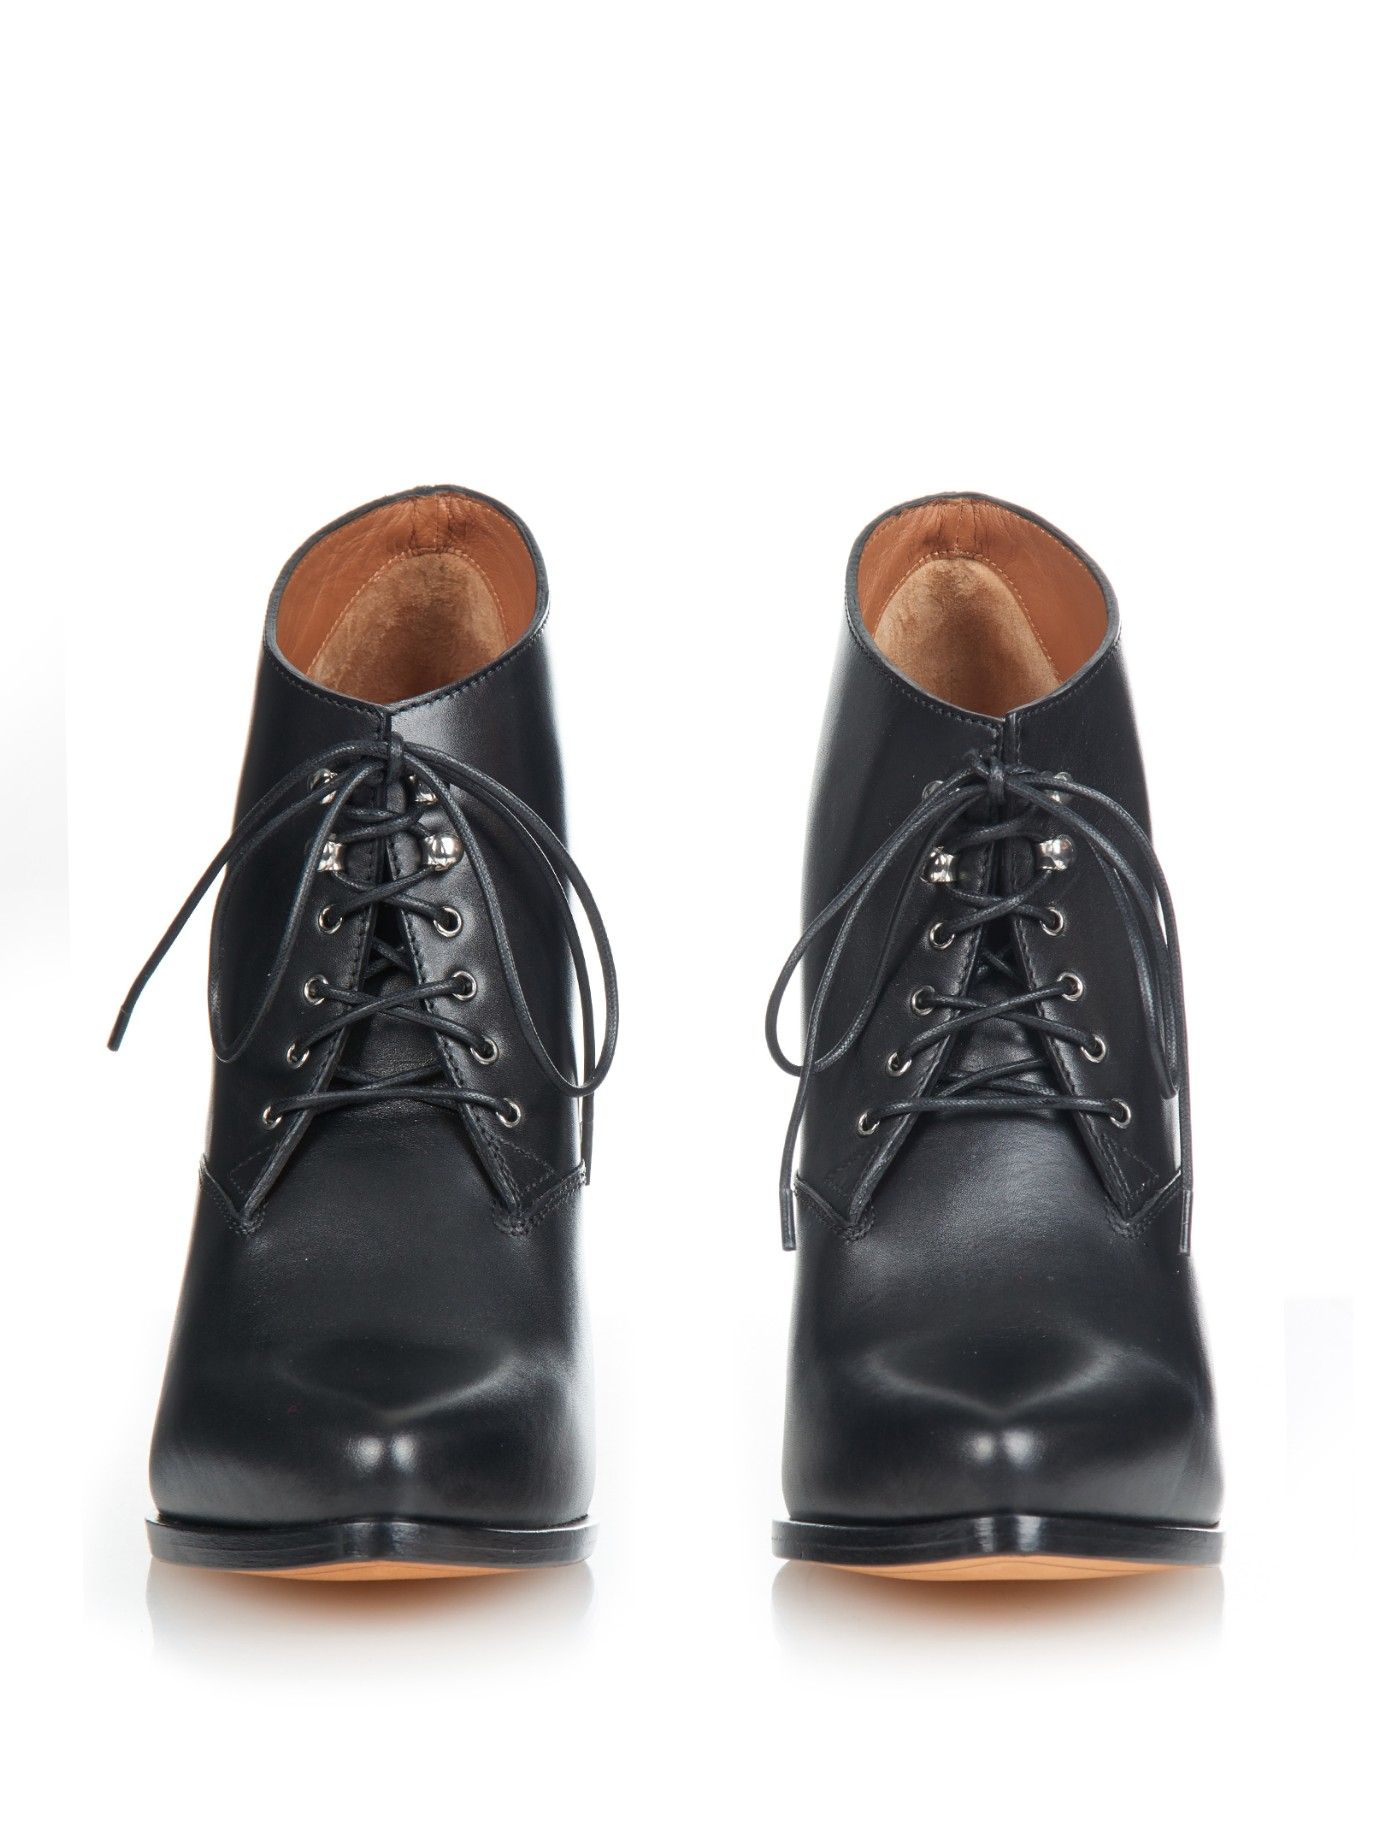 Givenchy Leather Lace Ups Good Selling Cheap Price RjH9lJX